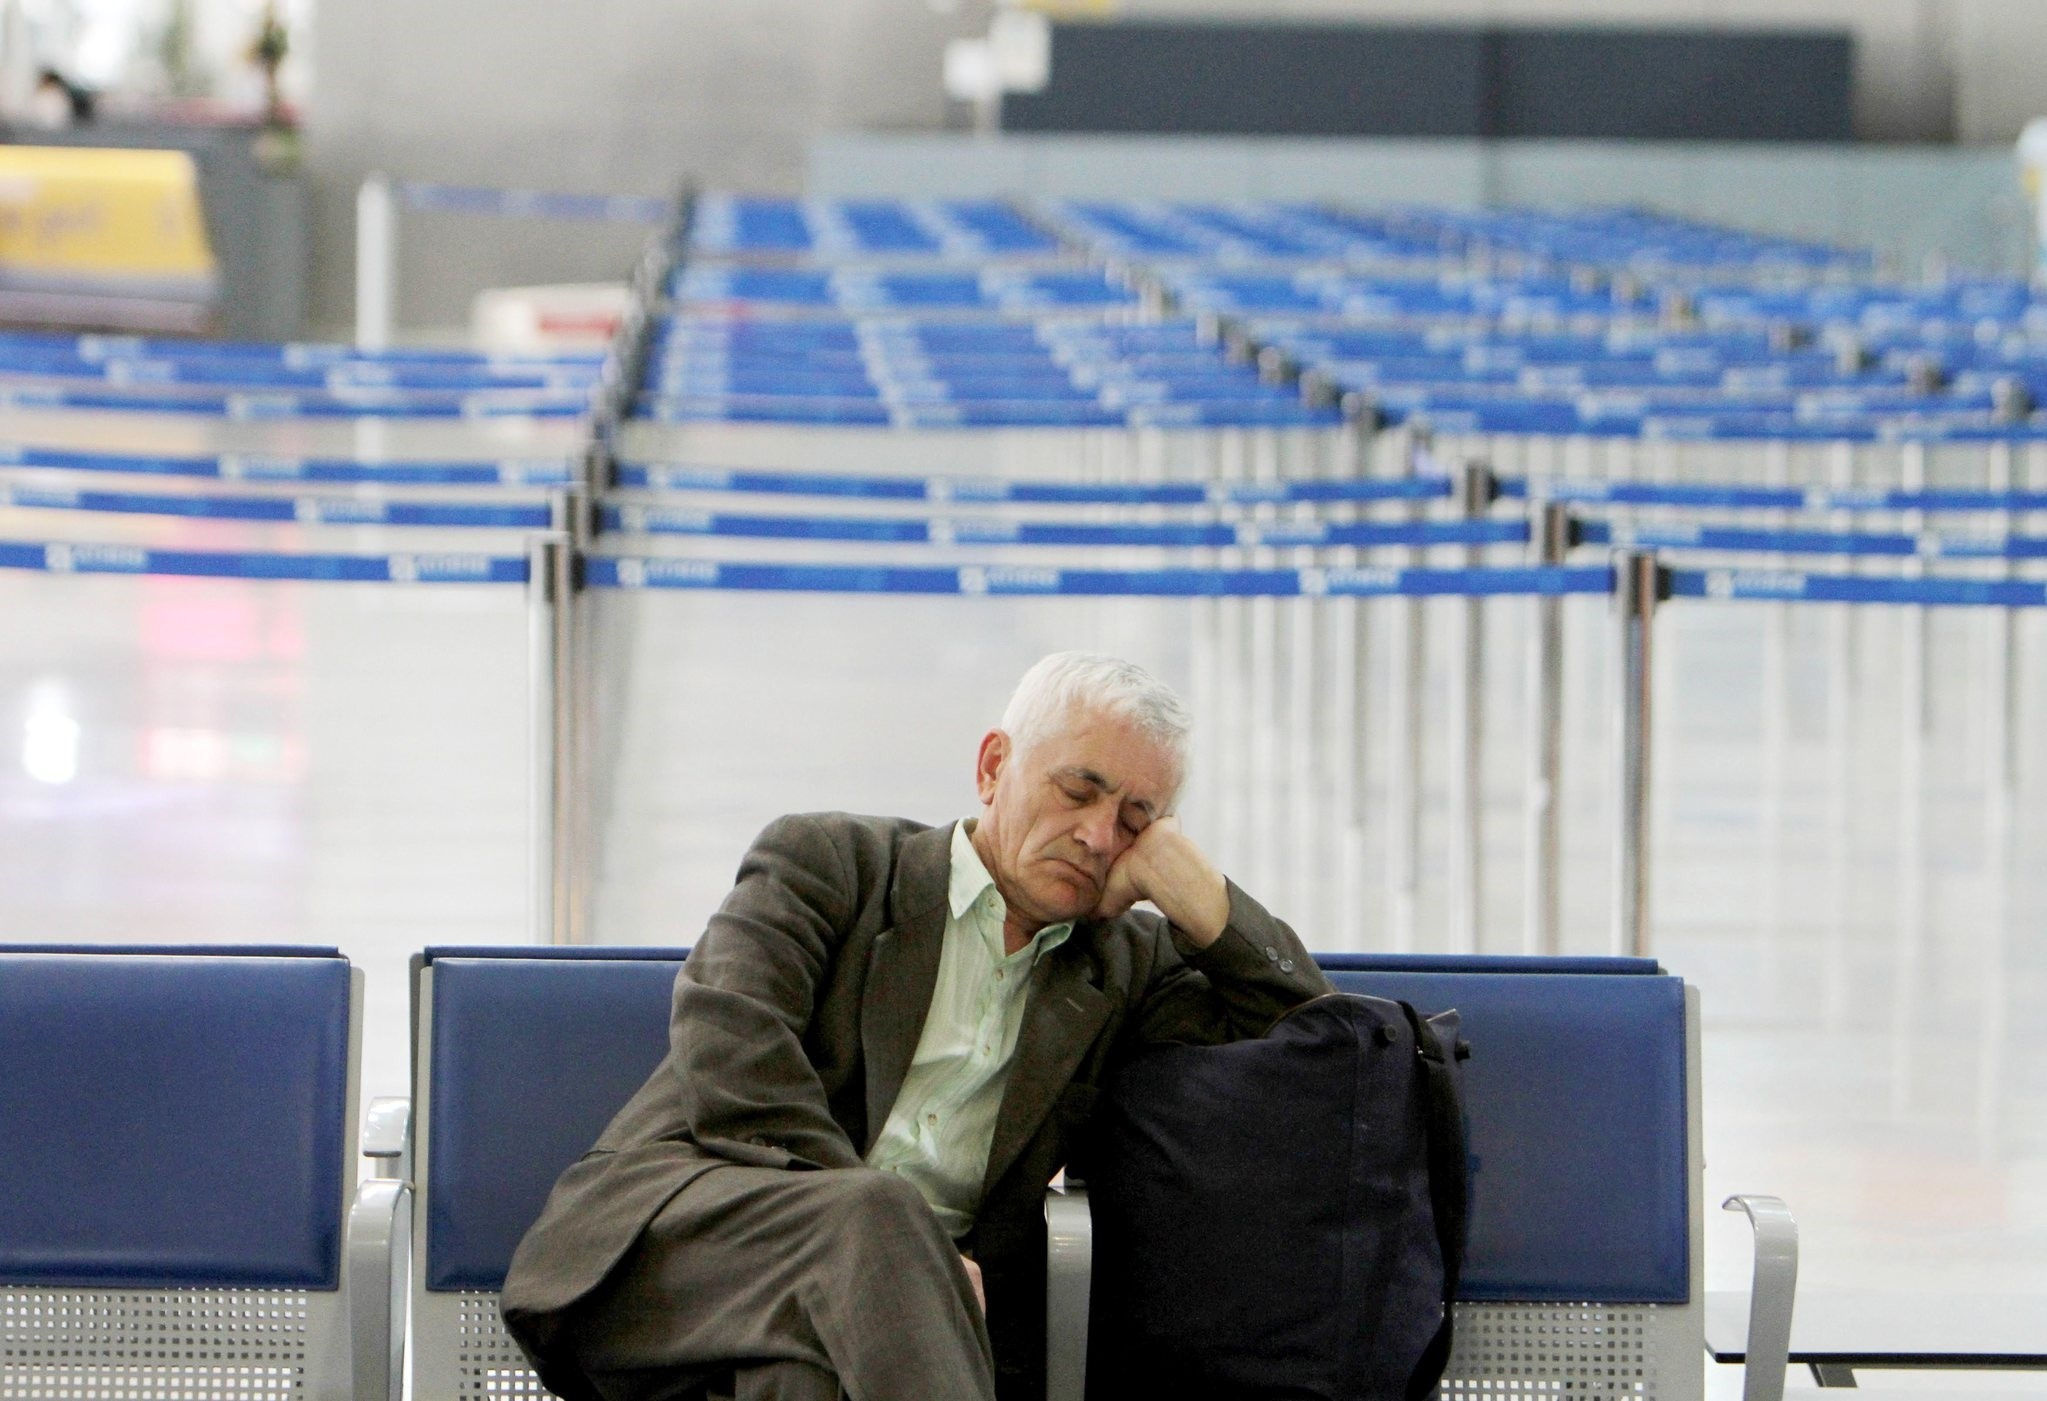 A passenger sleeps during a strike at the Athens International Airport Eleftherios Venizelos in Spata on Wednesday, Feb. 24, 2010. (AP Photo)